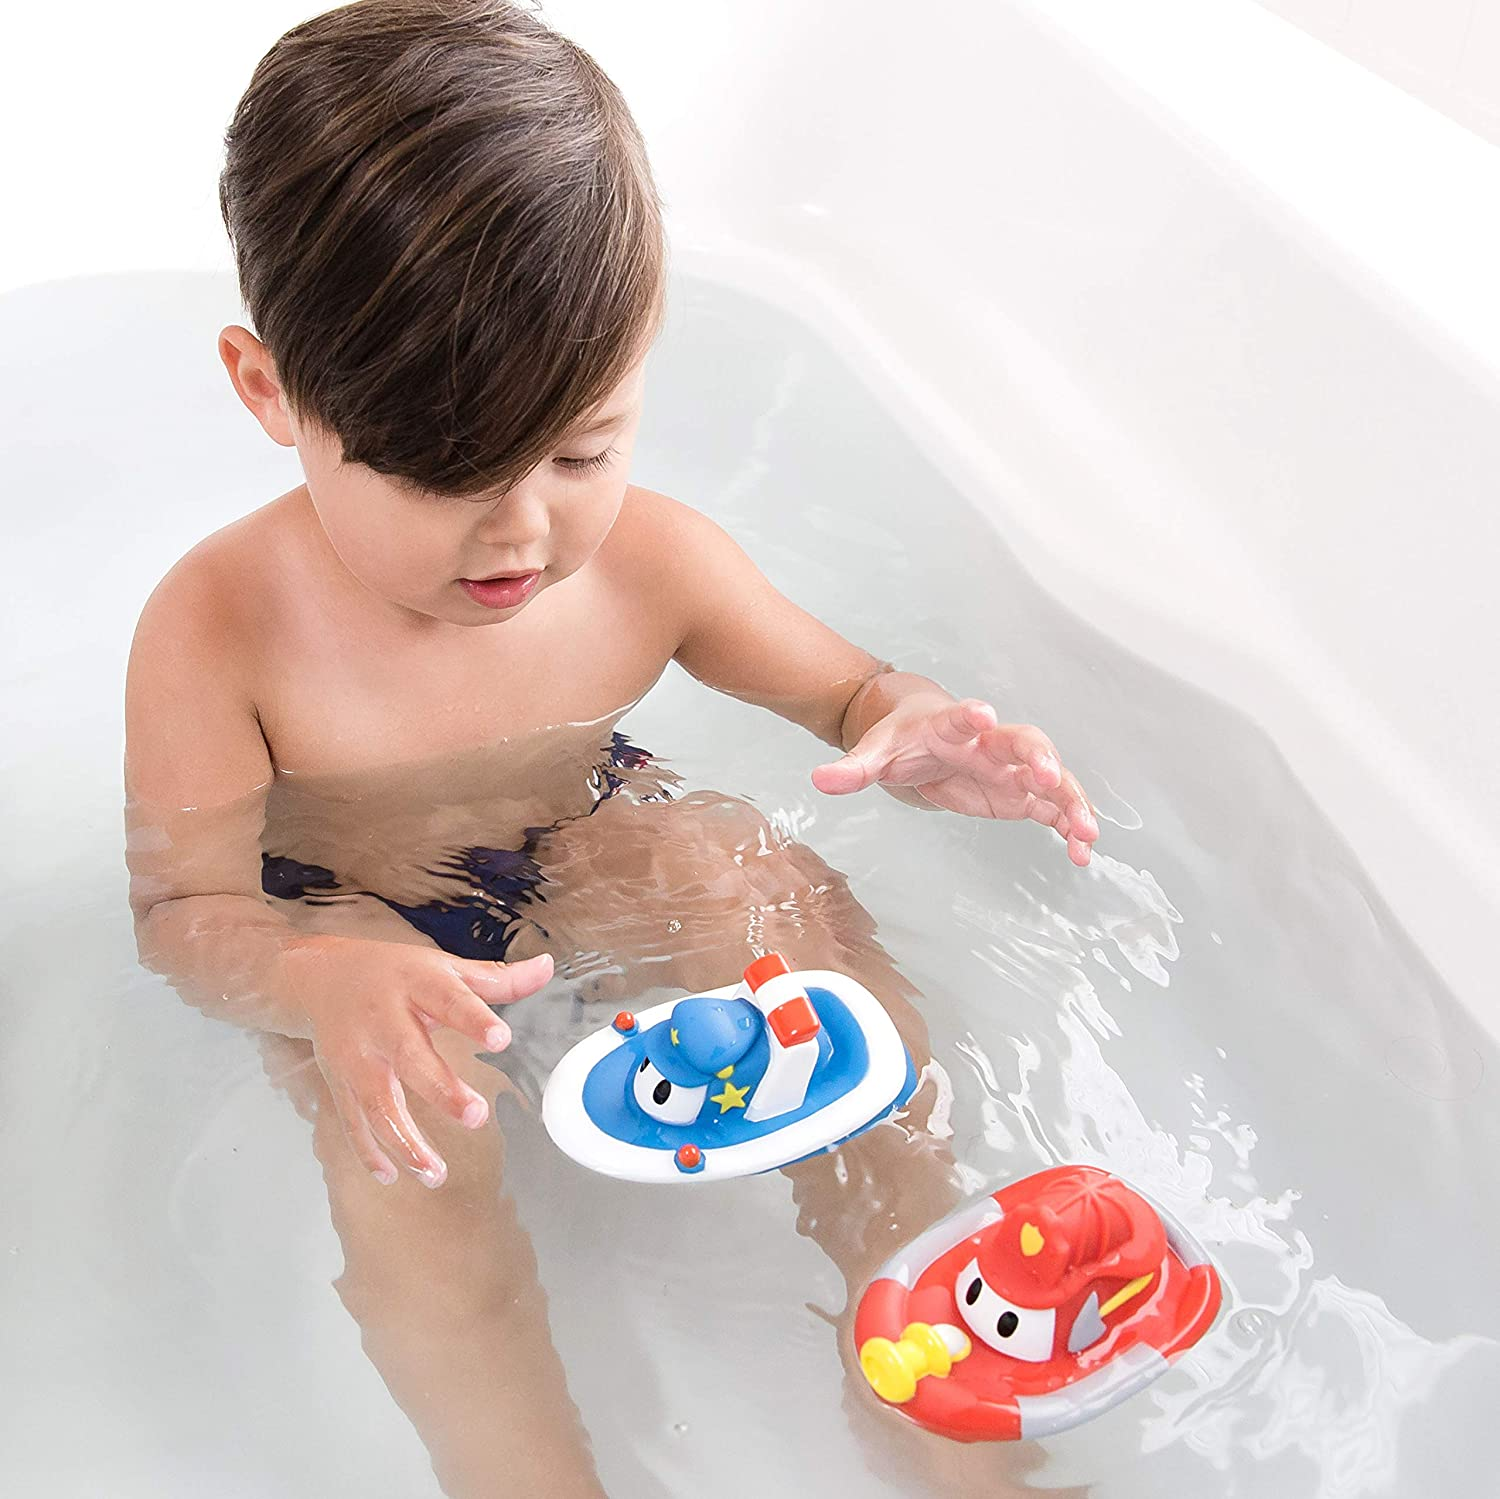 Nuby 2-Pack Tub Sales for sale Tugs Floating Boat Bath Toys Vary Colors Sale May